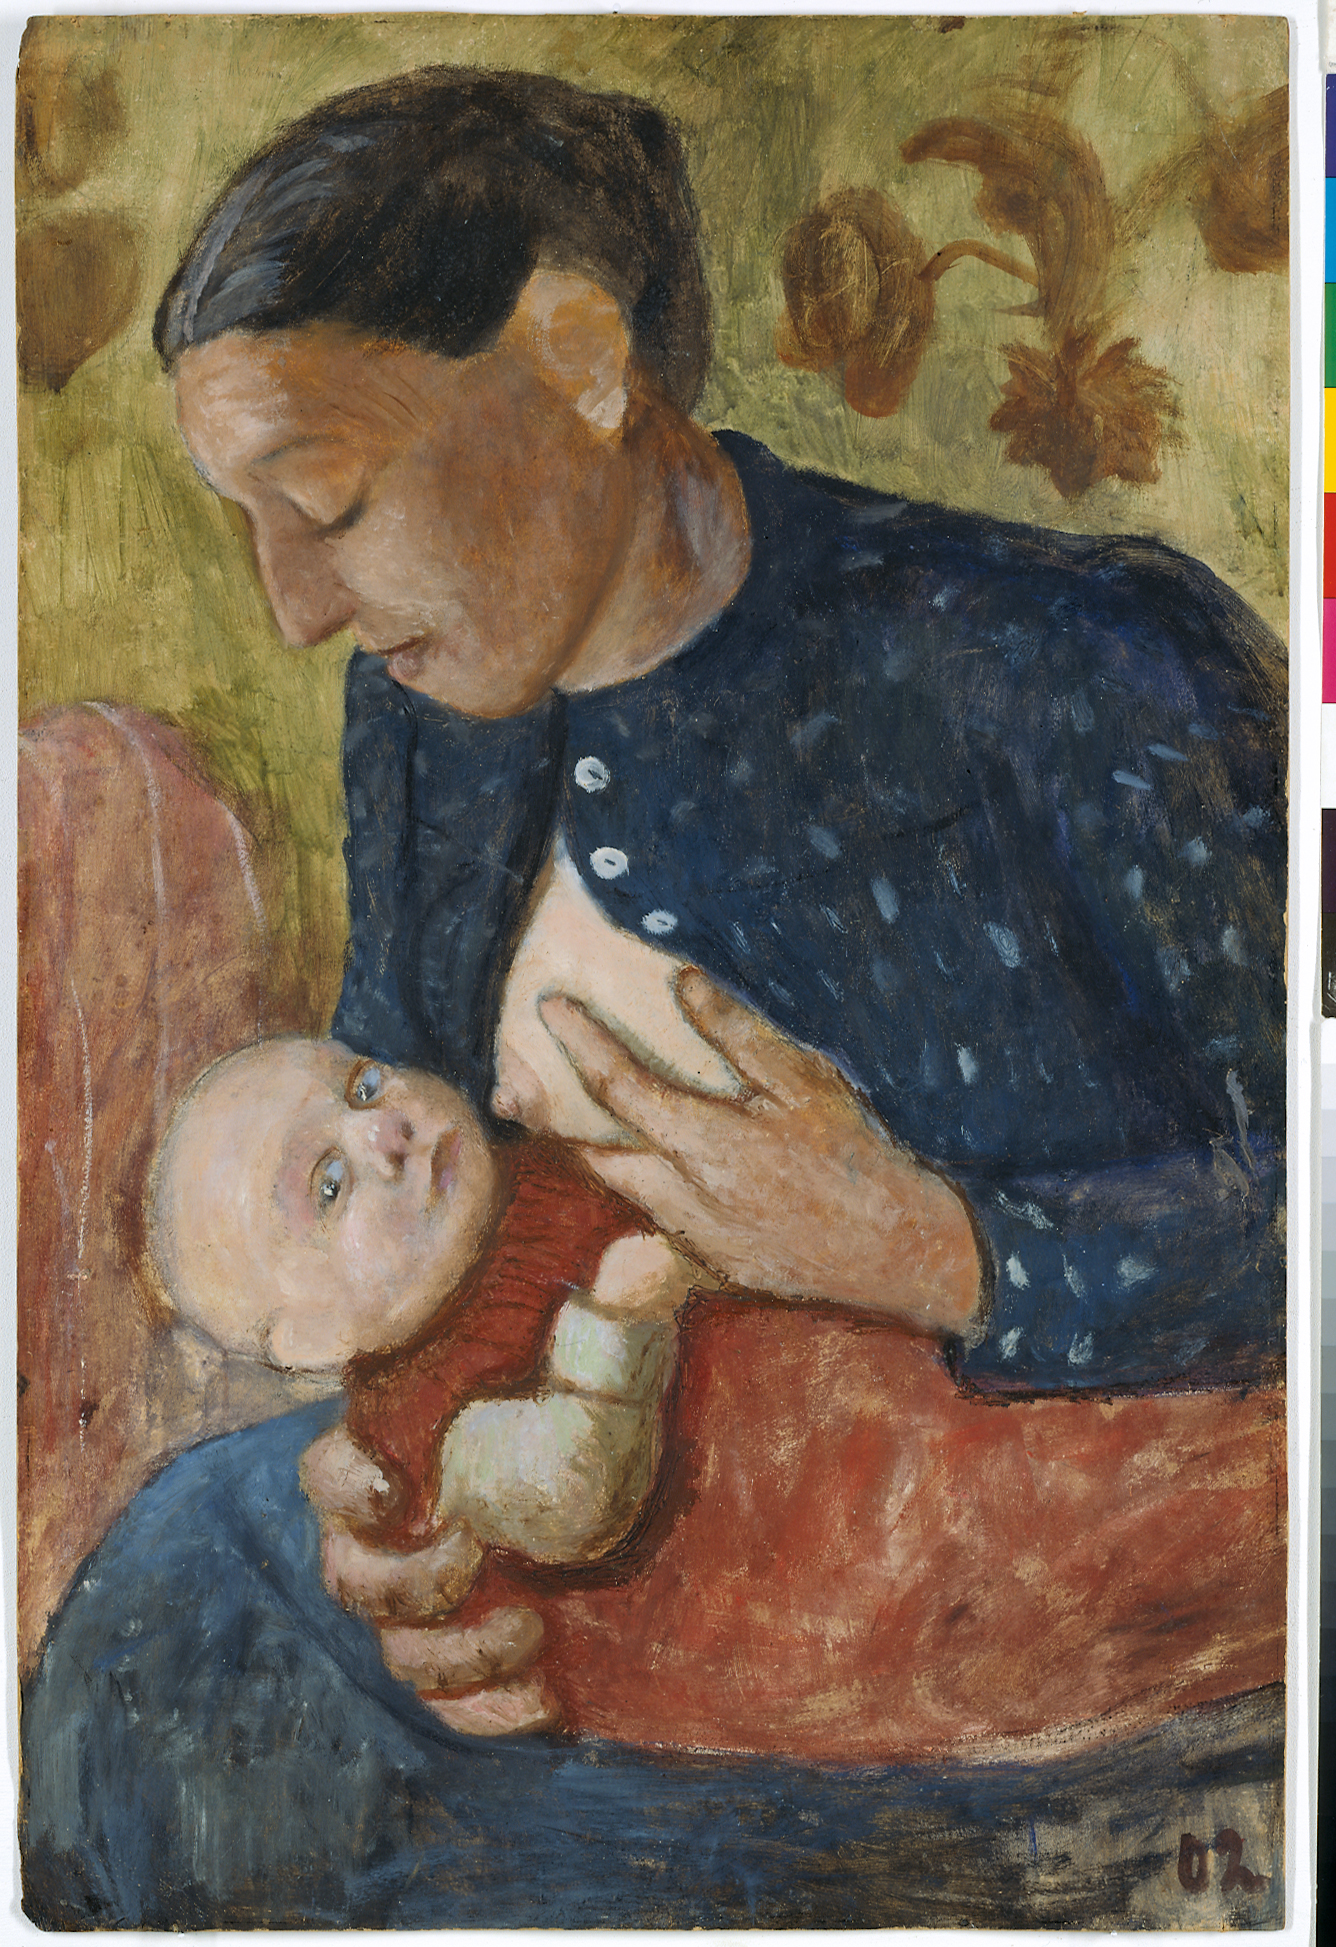 Paula Modersohn-Becker, Stillende Mutter